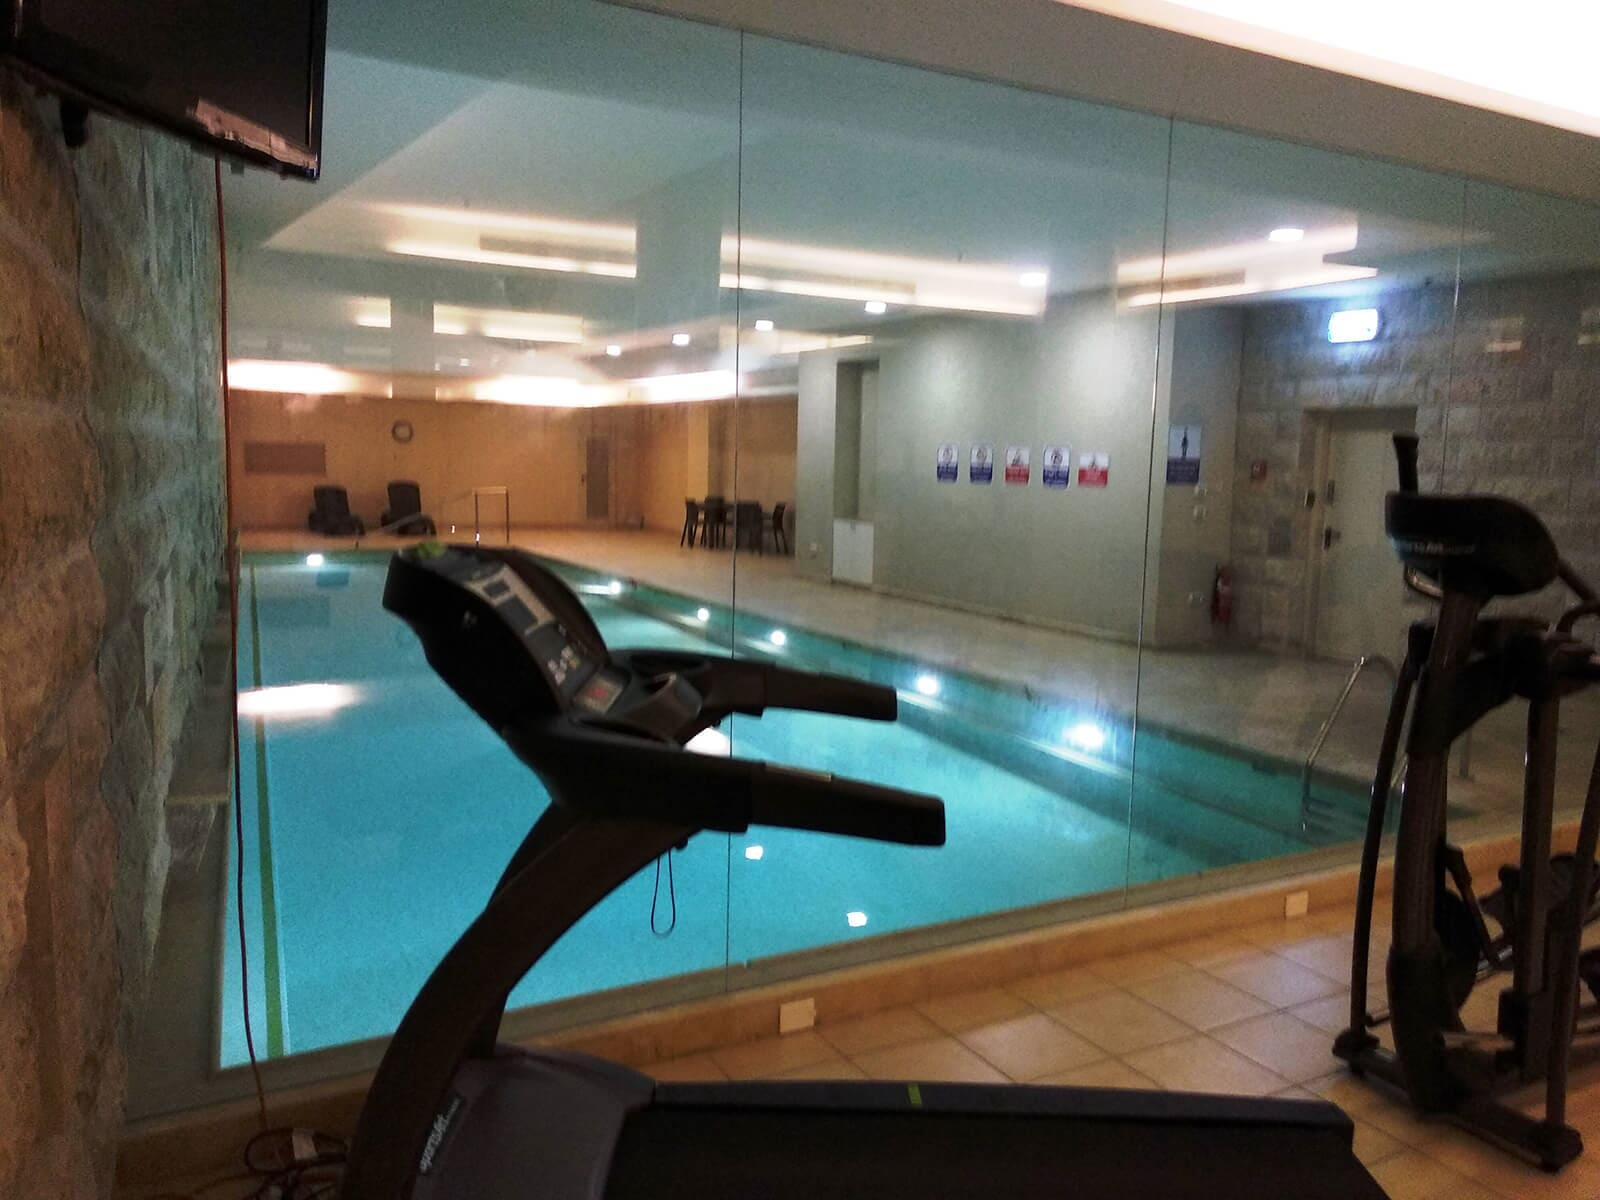 Pools and Gyms